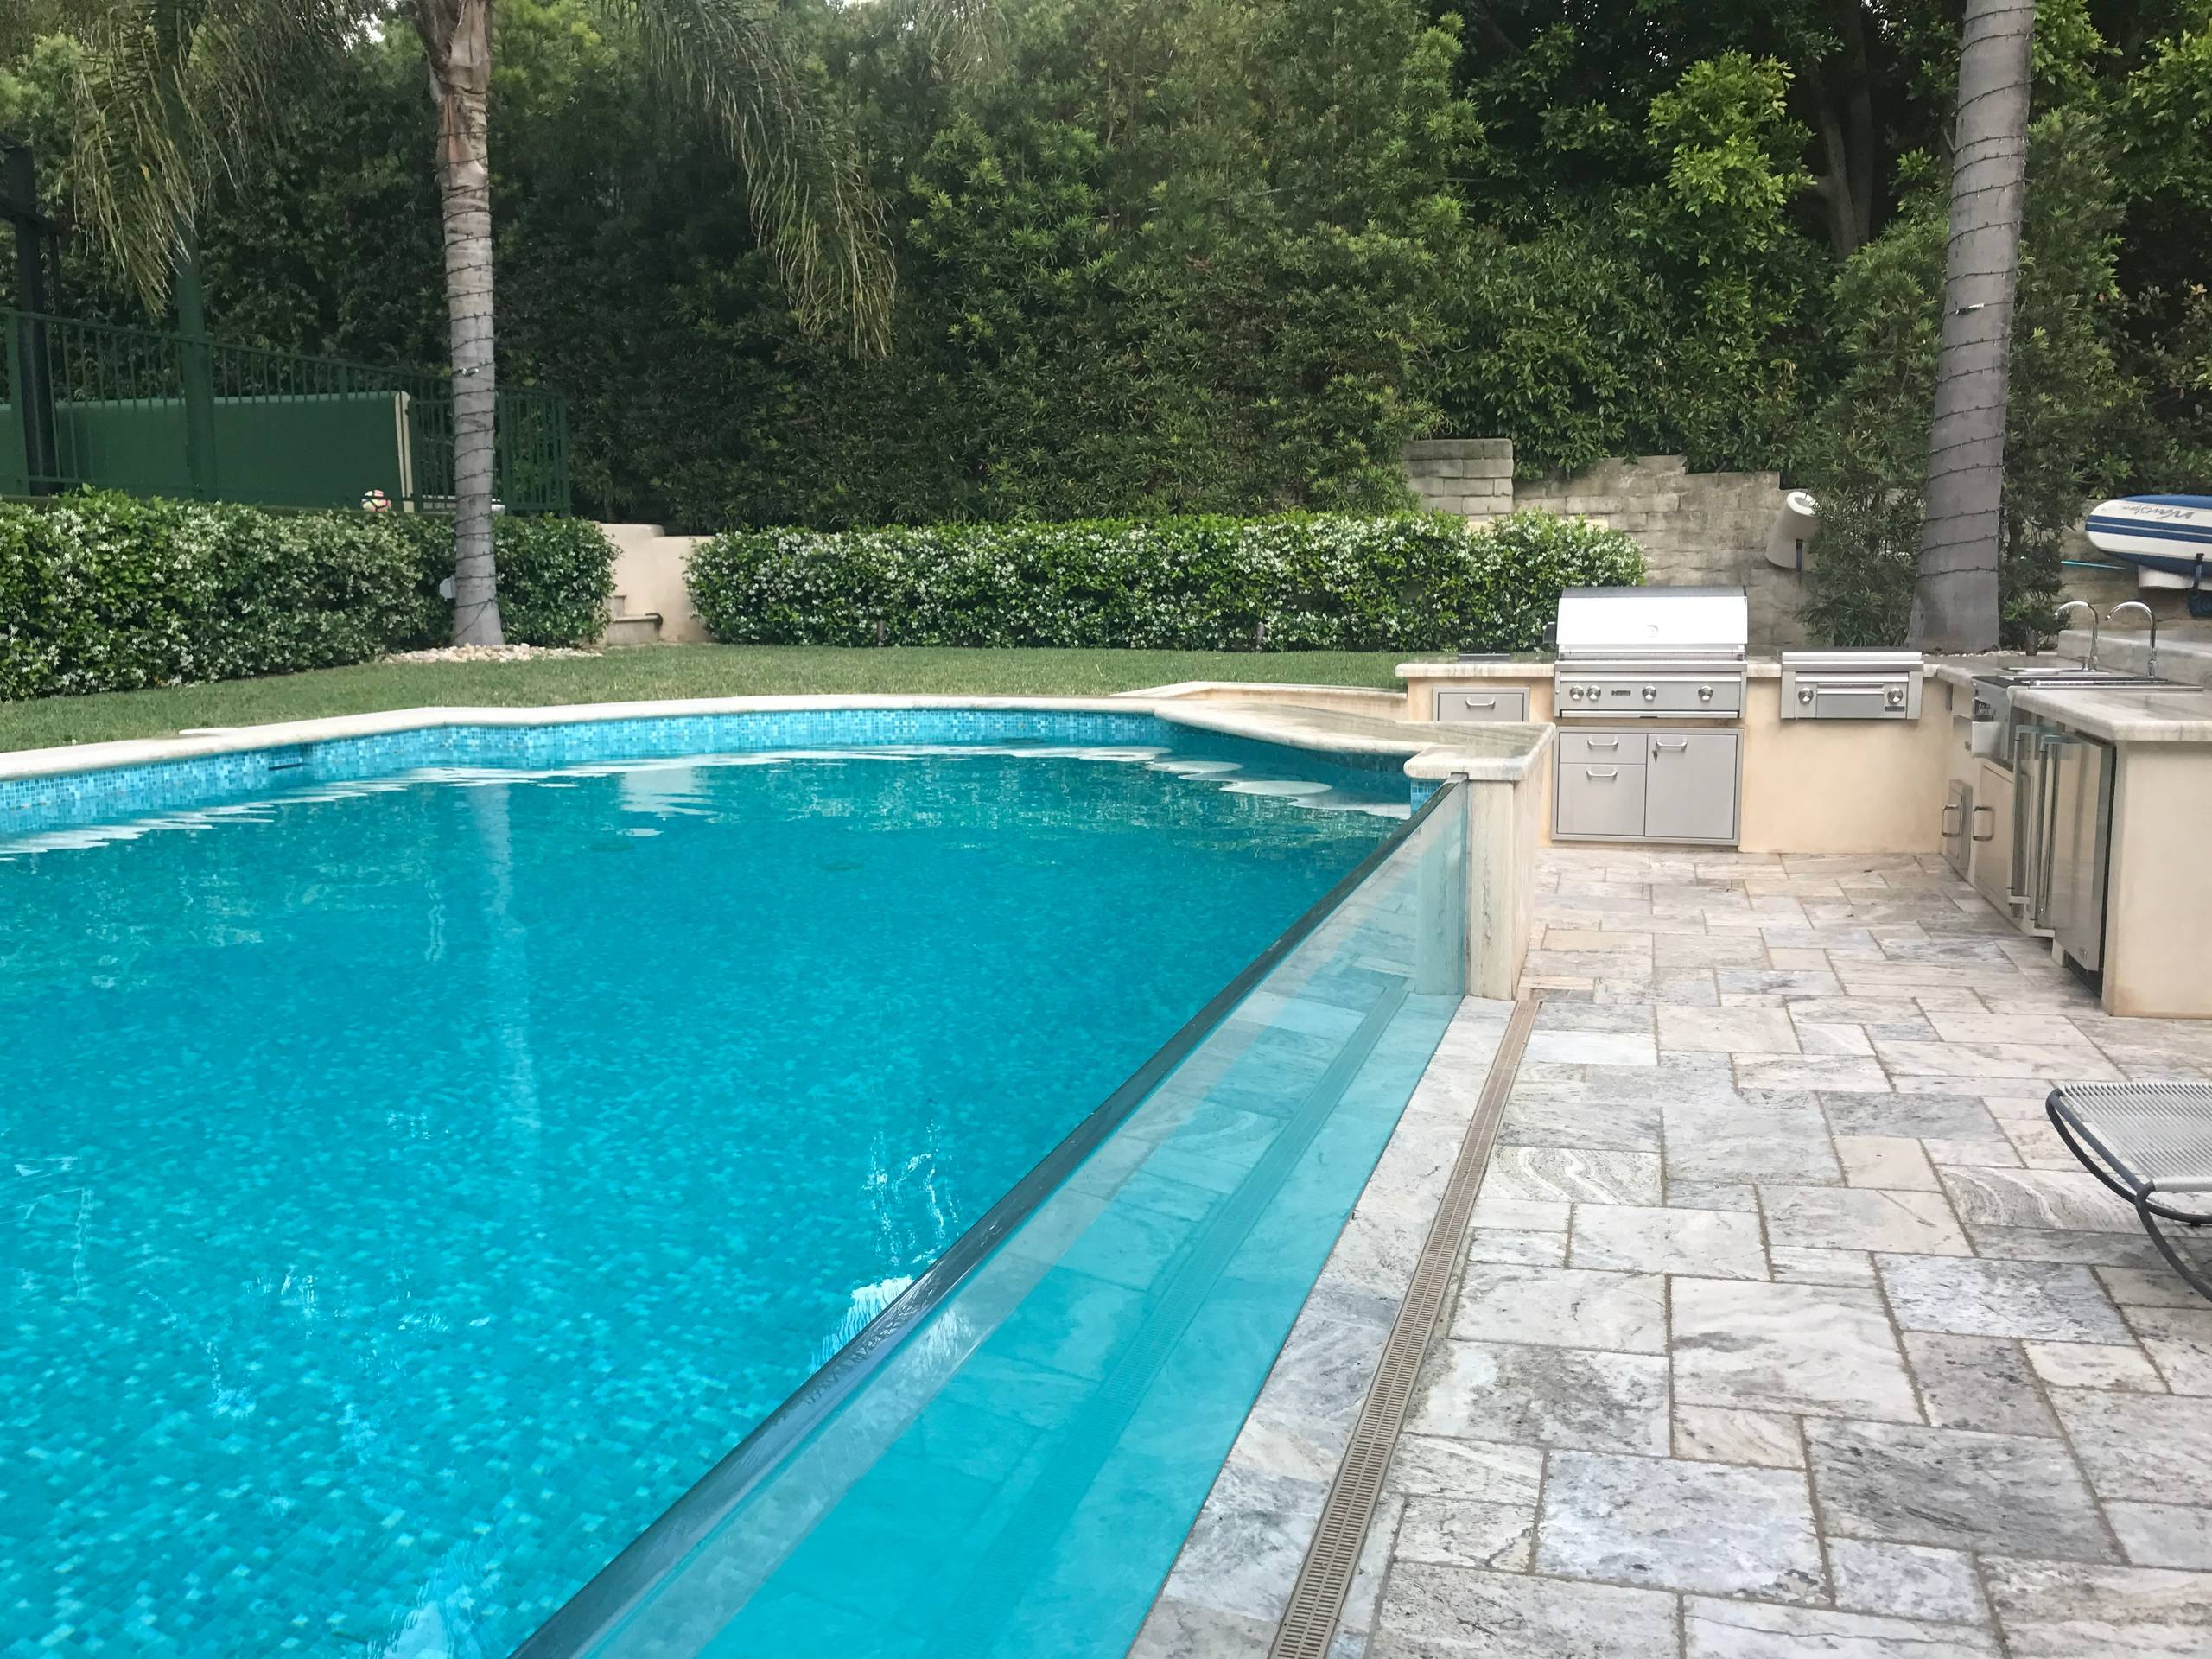 Bel Air Tile Swimming Pool with Acrylic Wall to see into pool